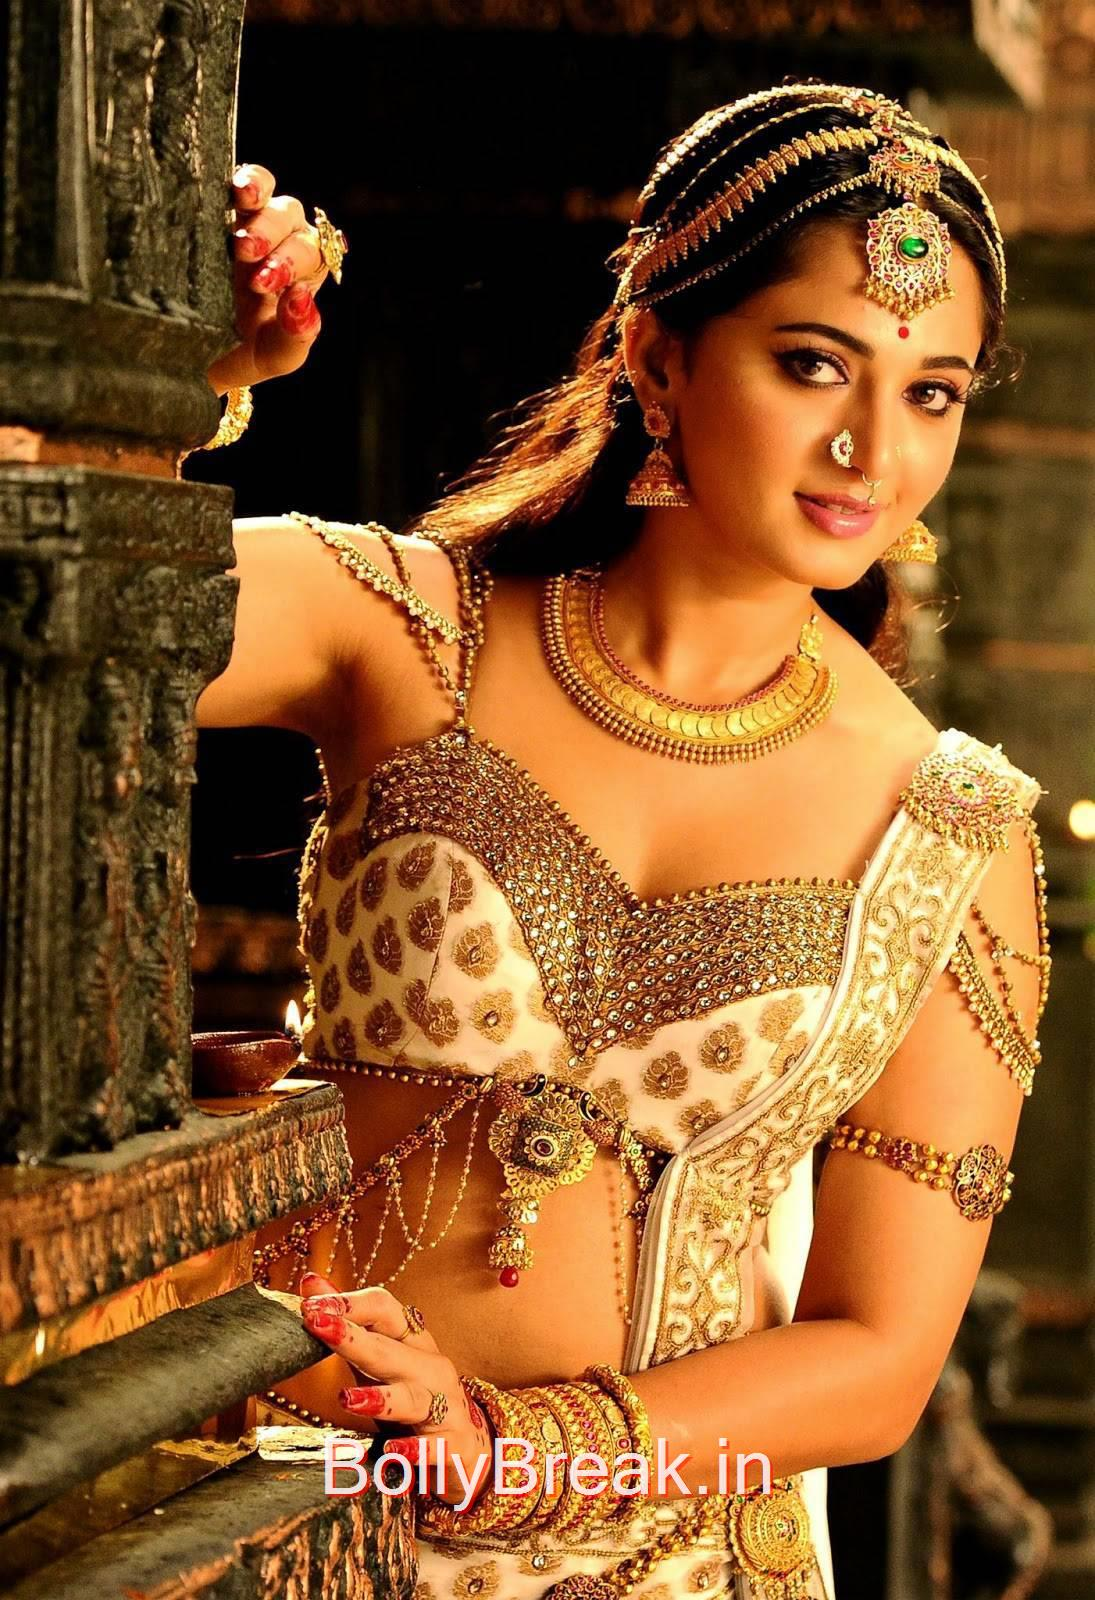 Rudramadevi Film Latest Stills, Anushka Hot HD Stills From Rudrama Devi Movie